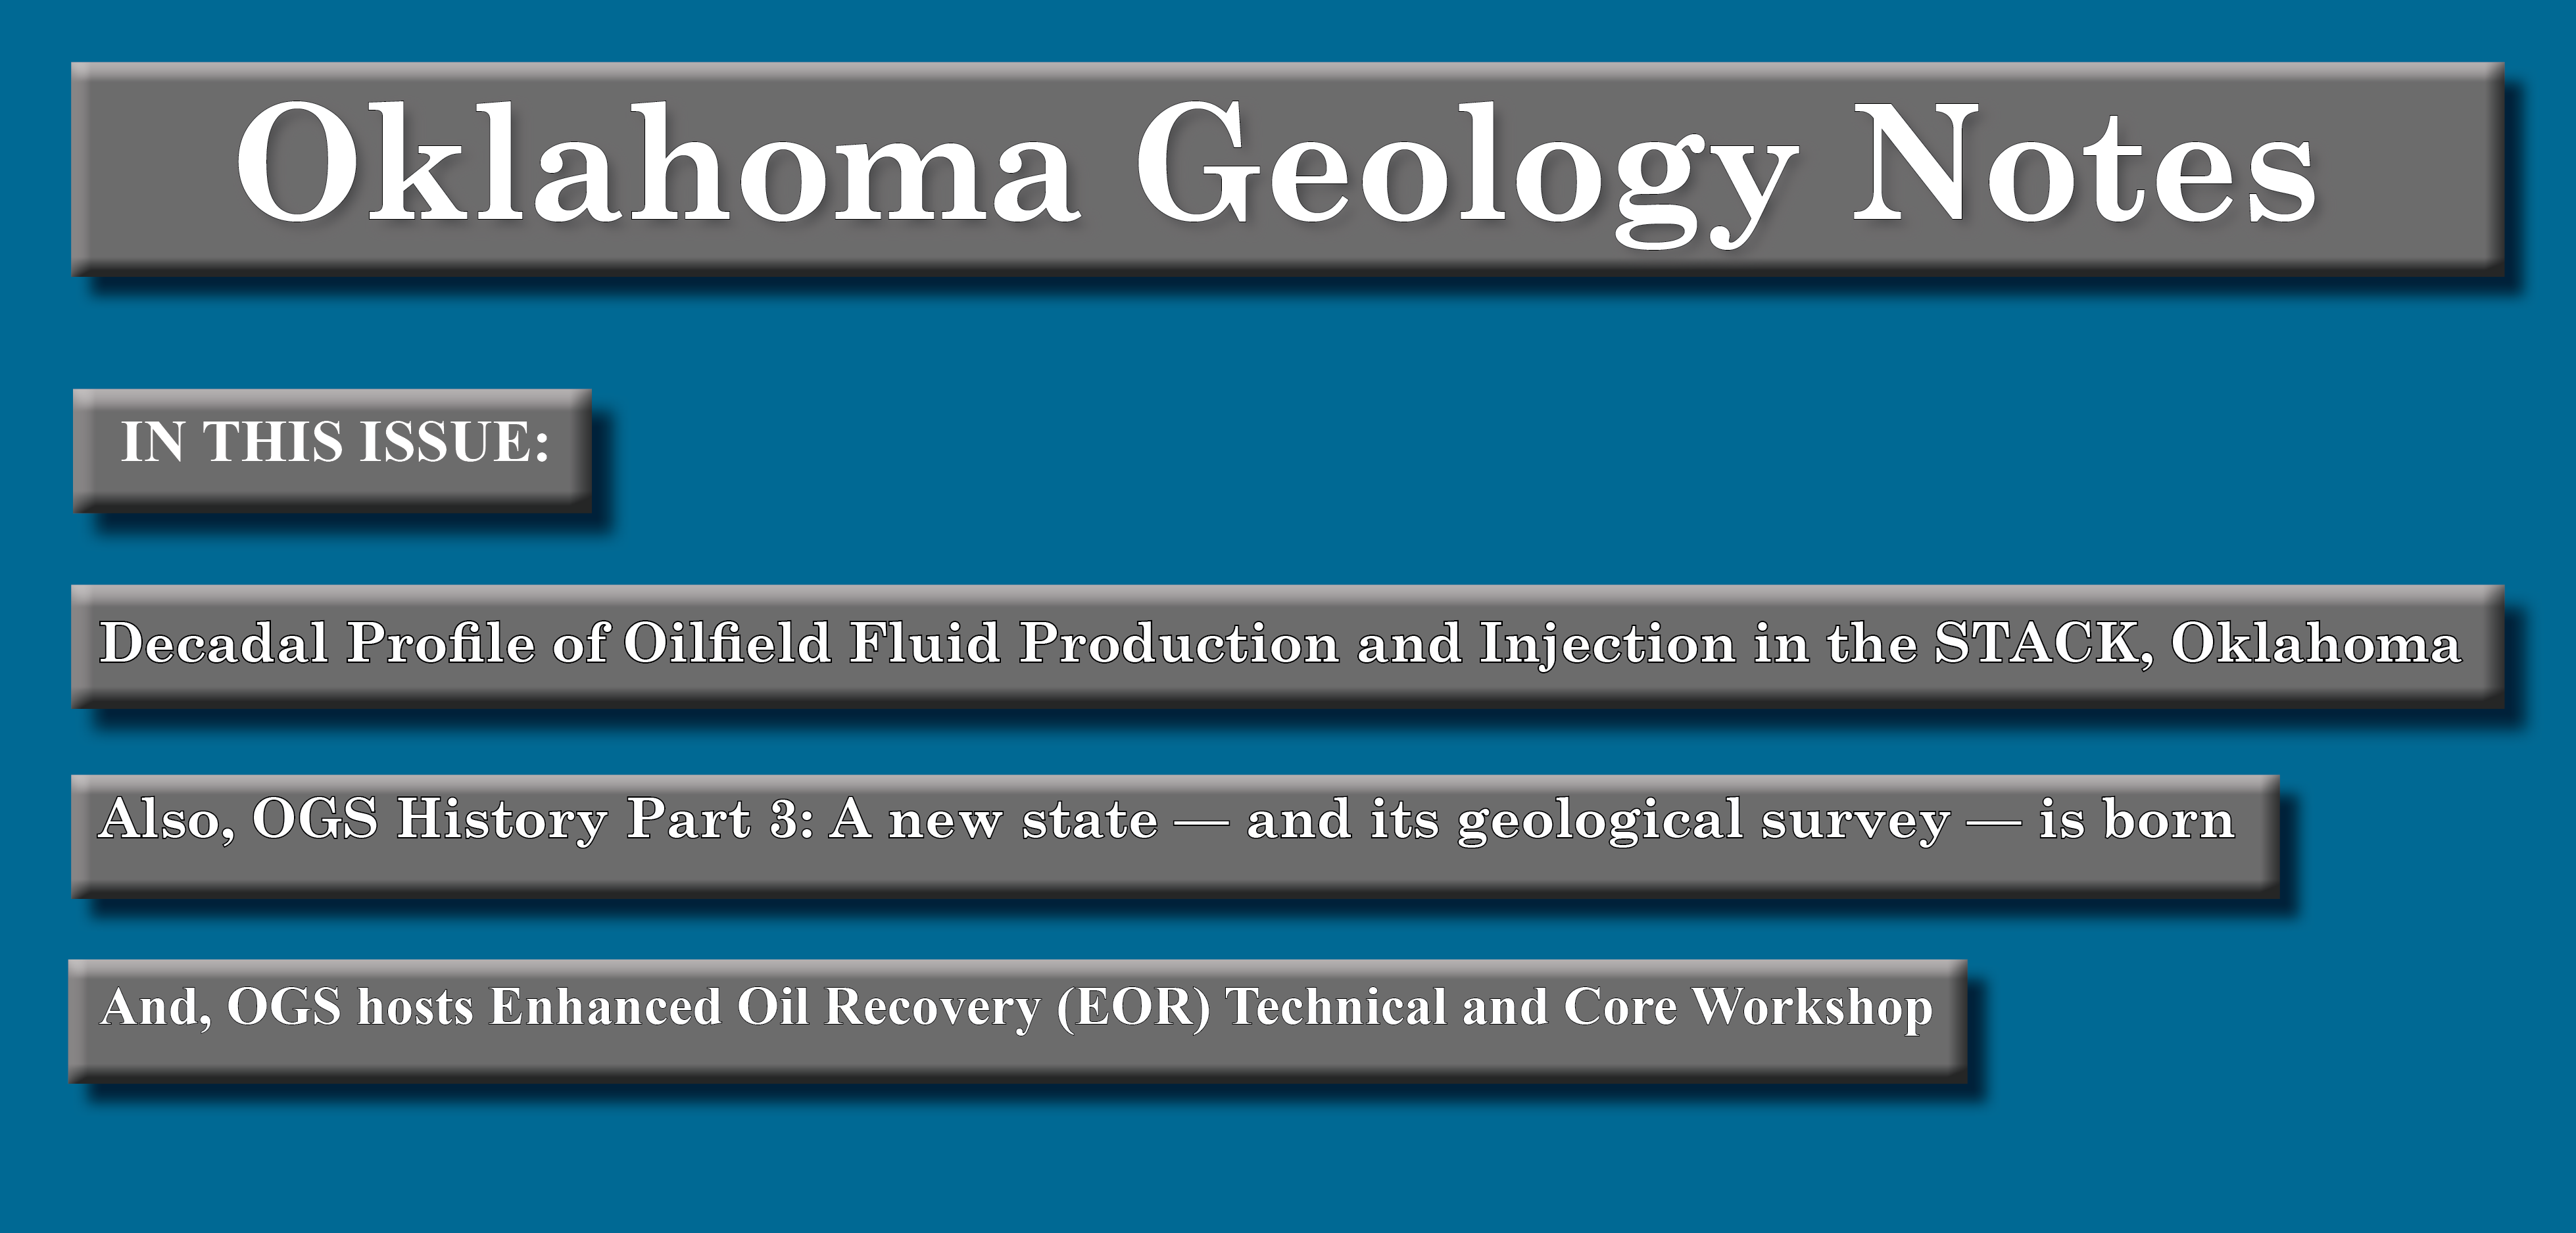 Oklahoma Geology Notes